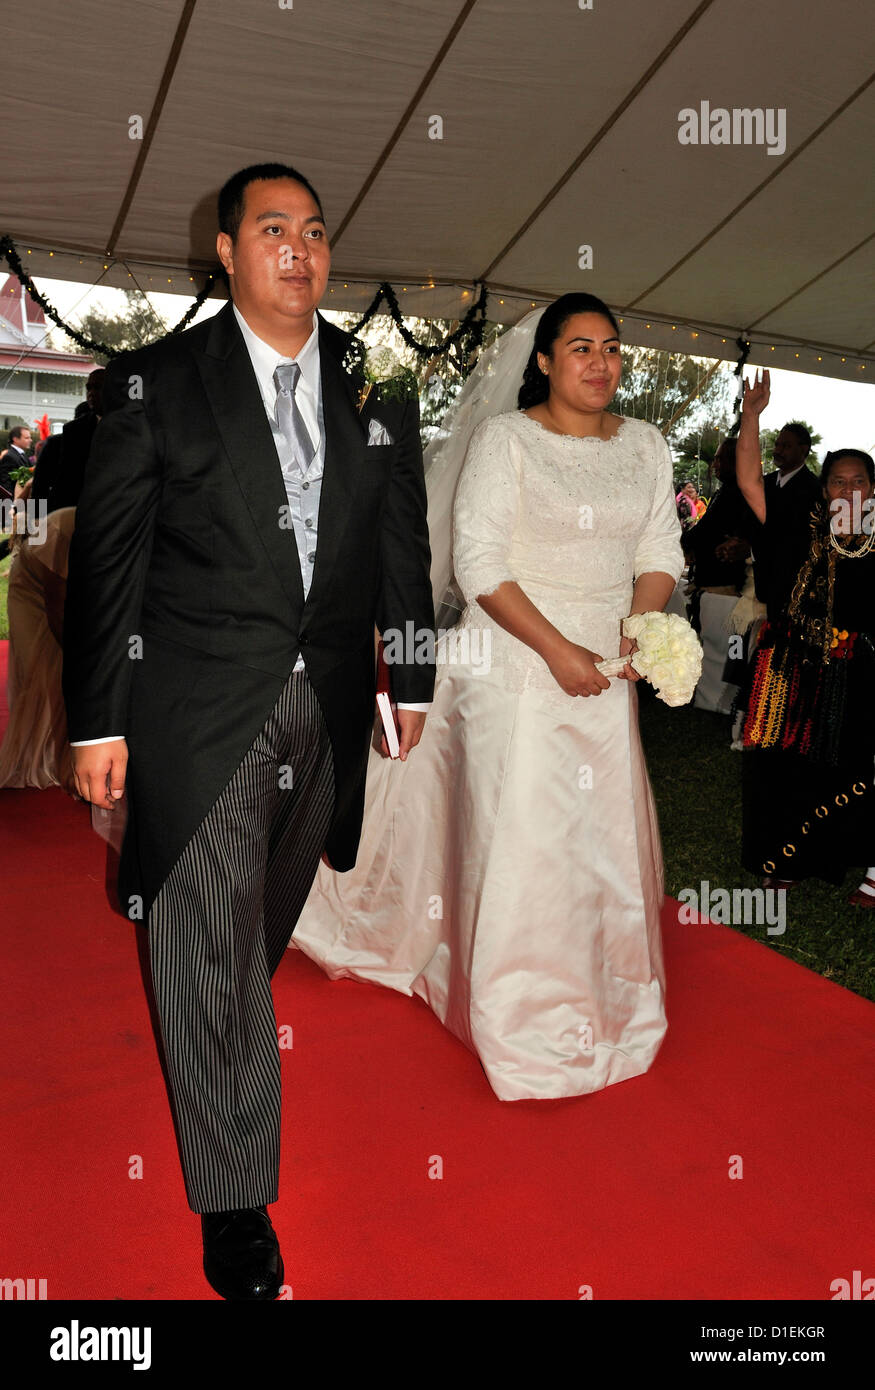 The Crown Prince of Tonga and his bride, Princess Sinaitakala ,walk up the red carpet as they arrive at their Wedding - Stock Image